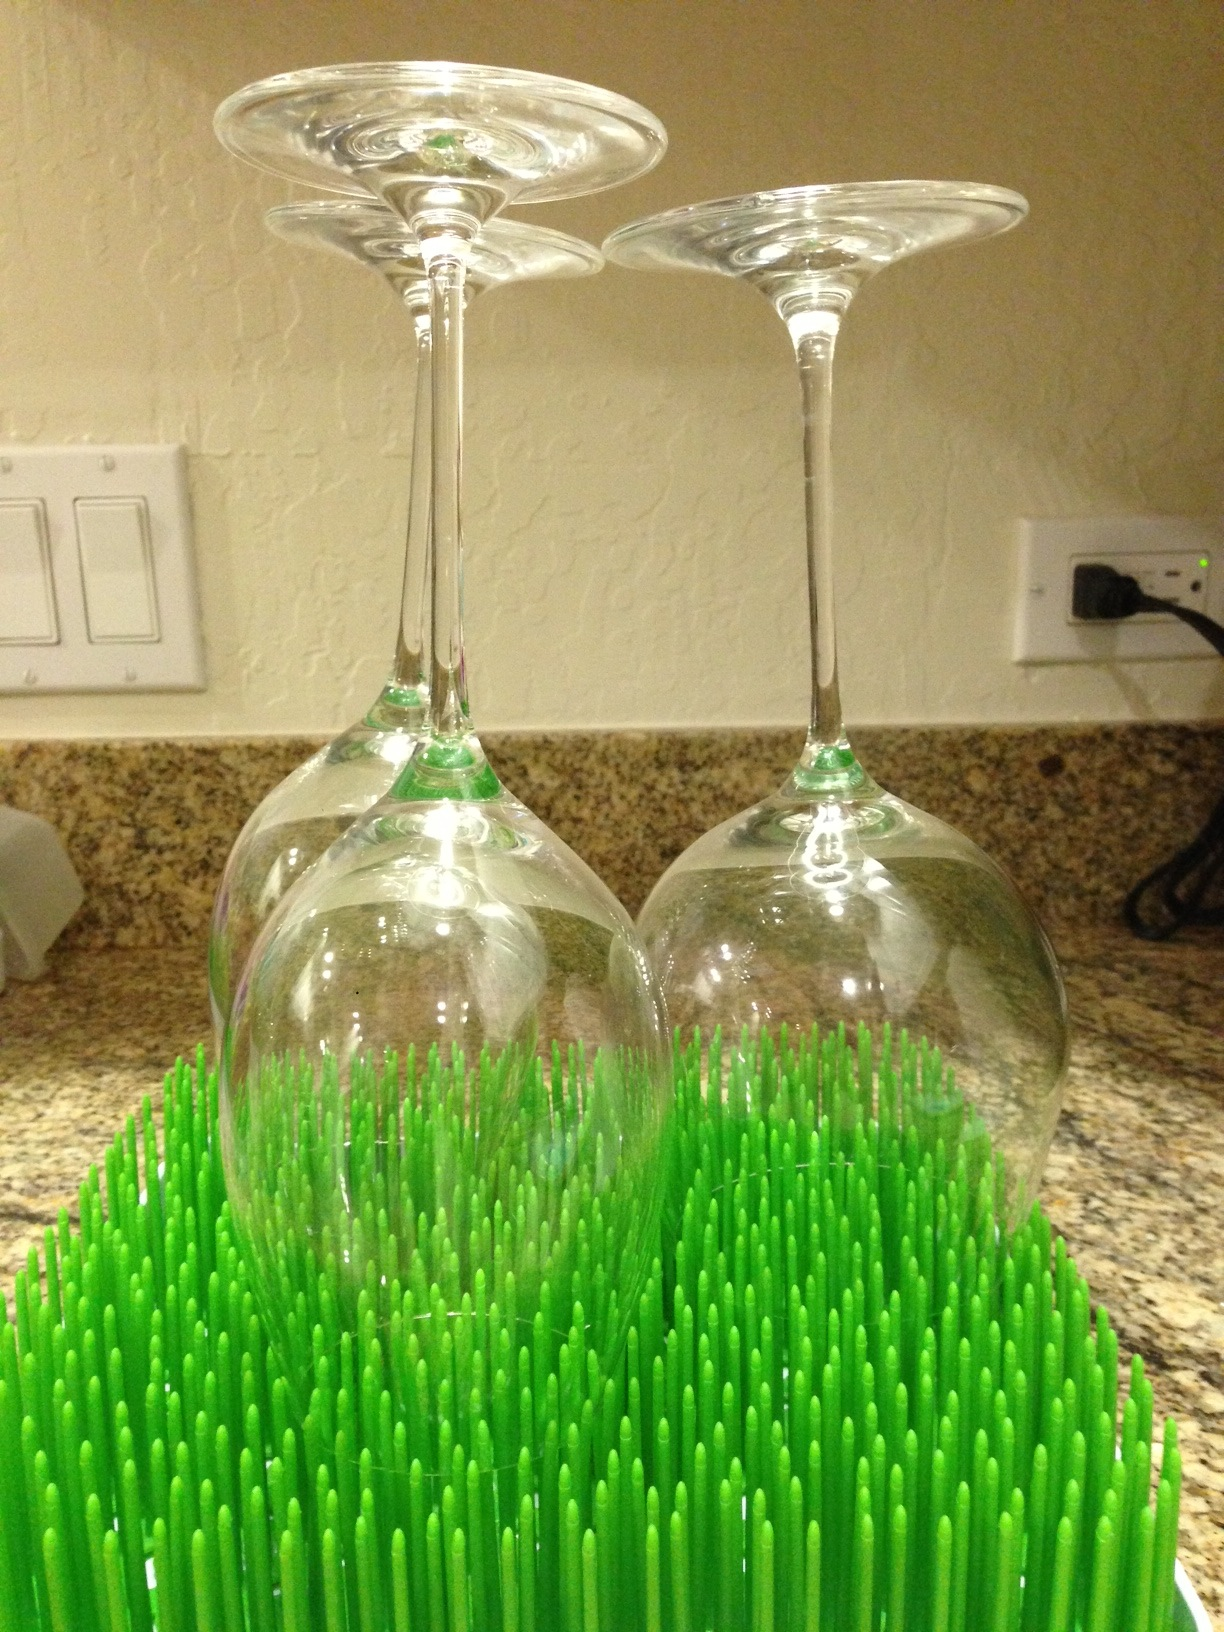 Countertop Wine Glass Holder Todays Hint How To Make Baby Bottle Drying Racks Worth